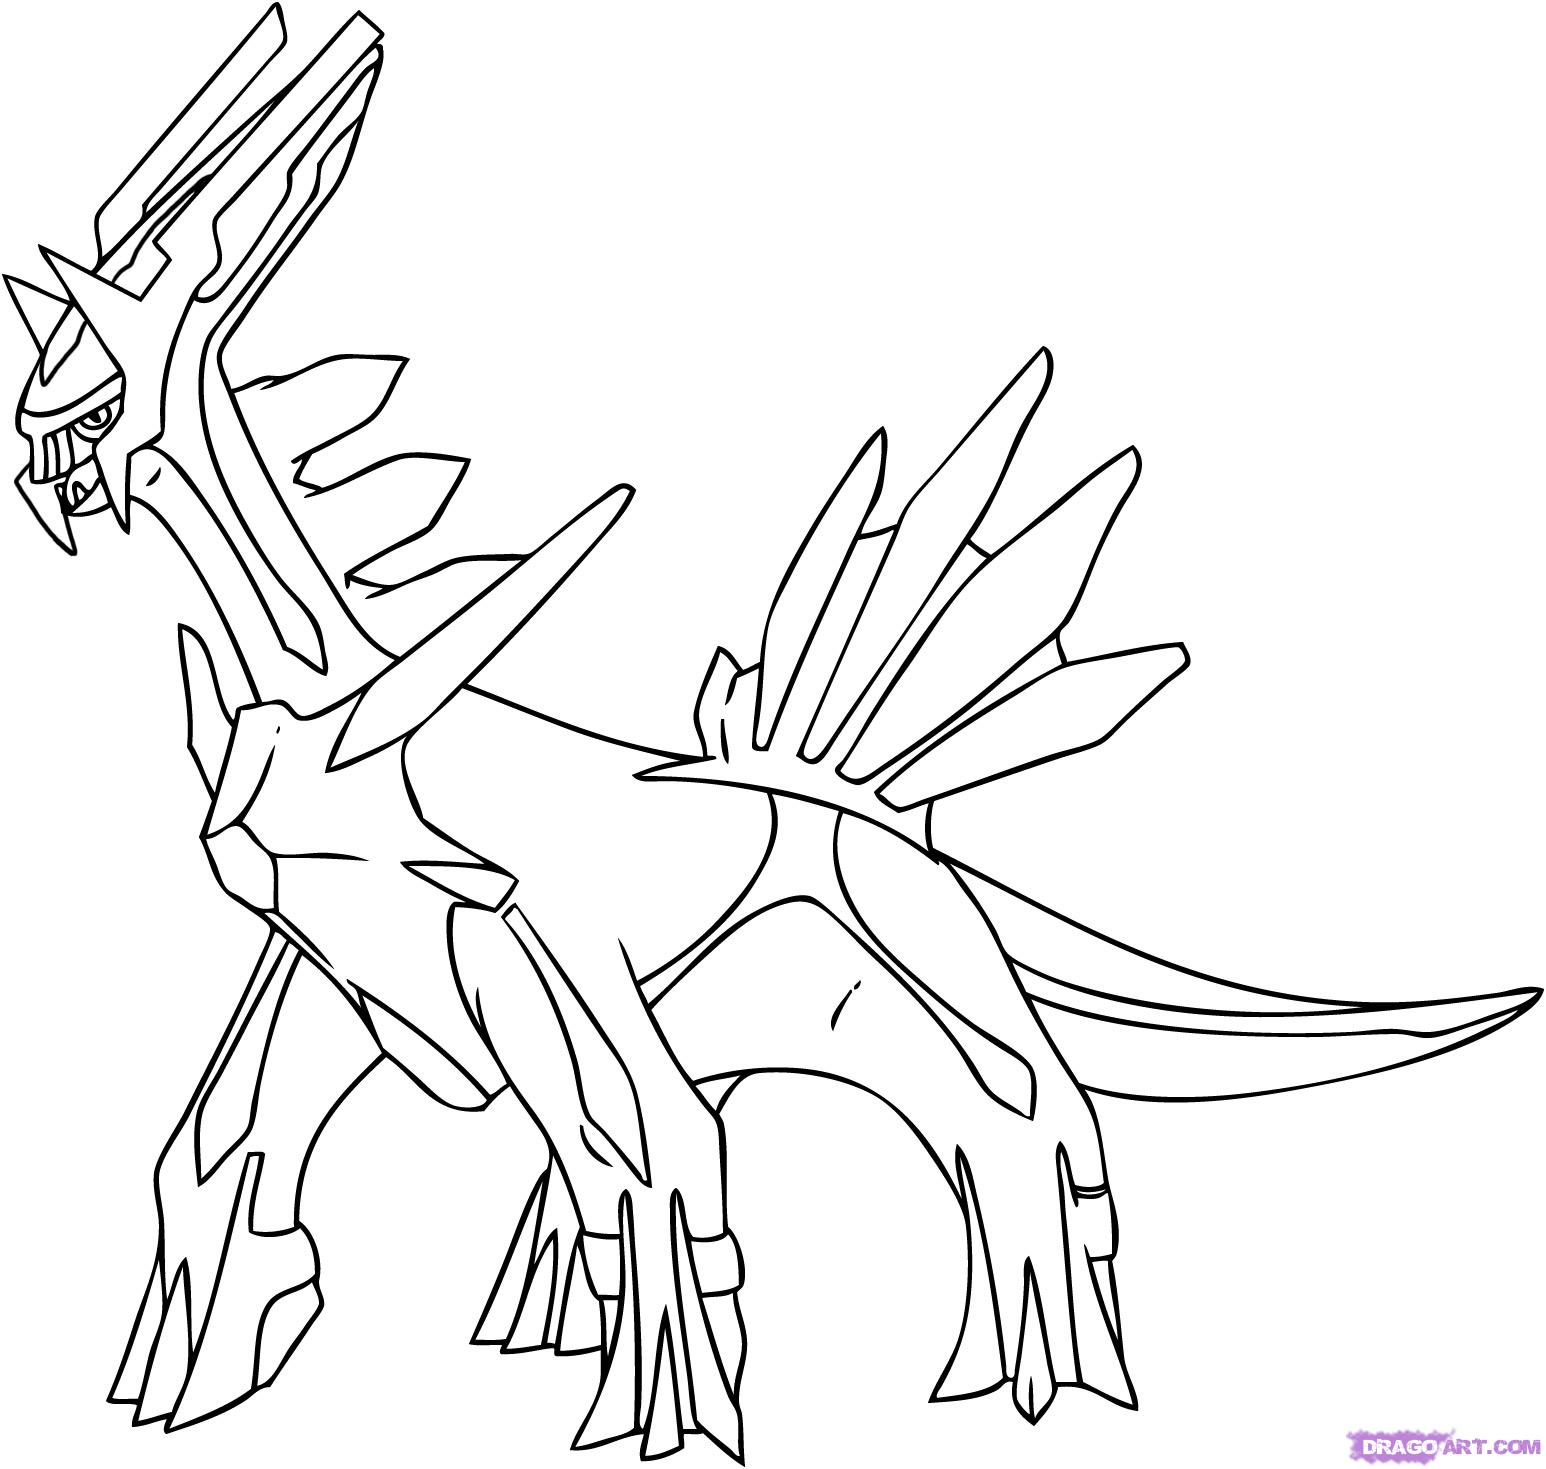 dialga coloring pages the mighty dialga coloring play free coloring game online pages coloring dialga